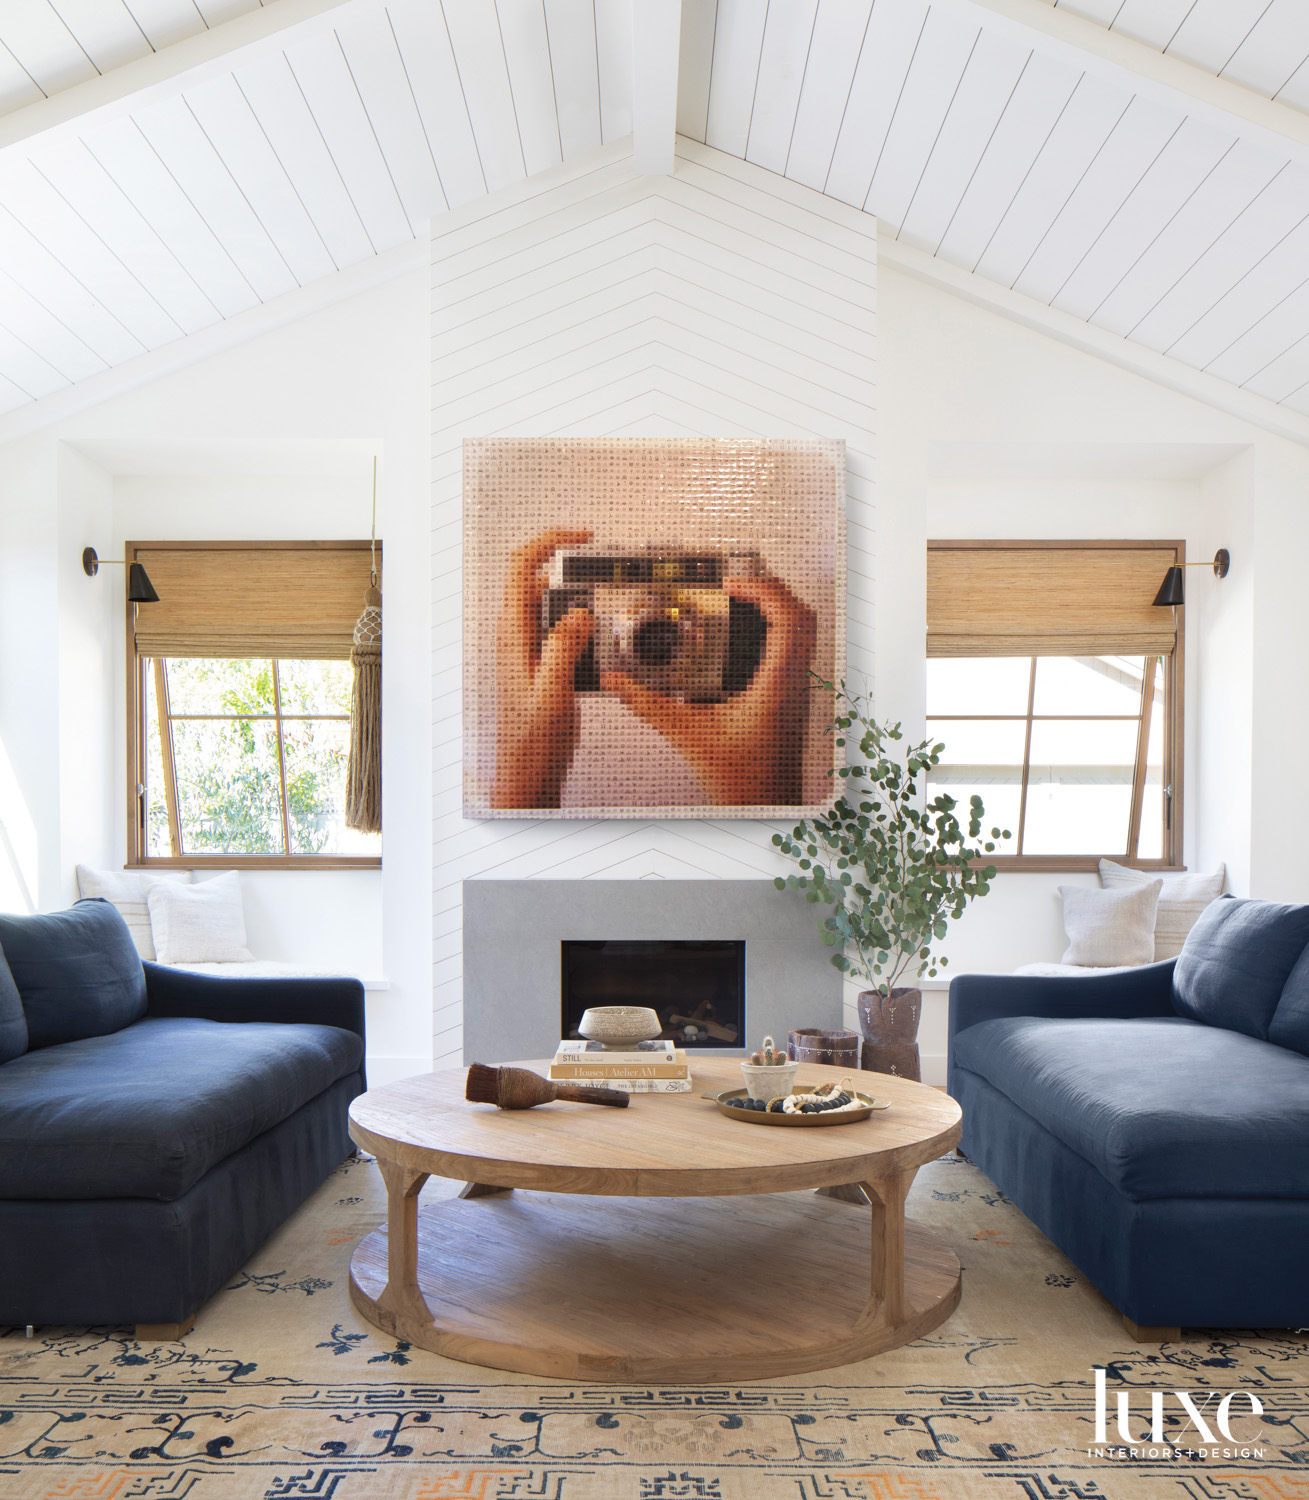 An artwork over the fireplace...